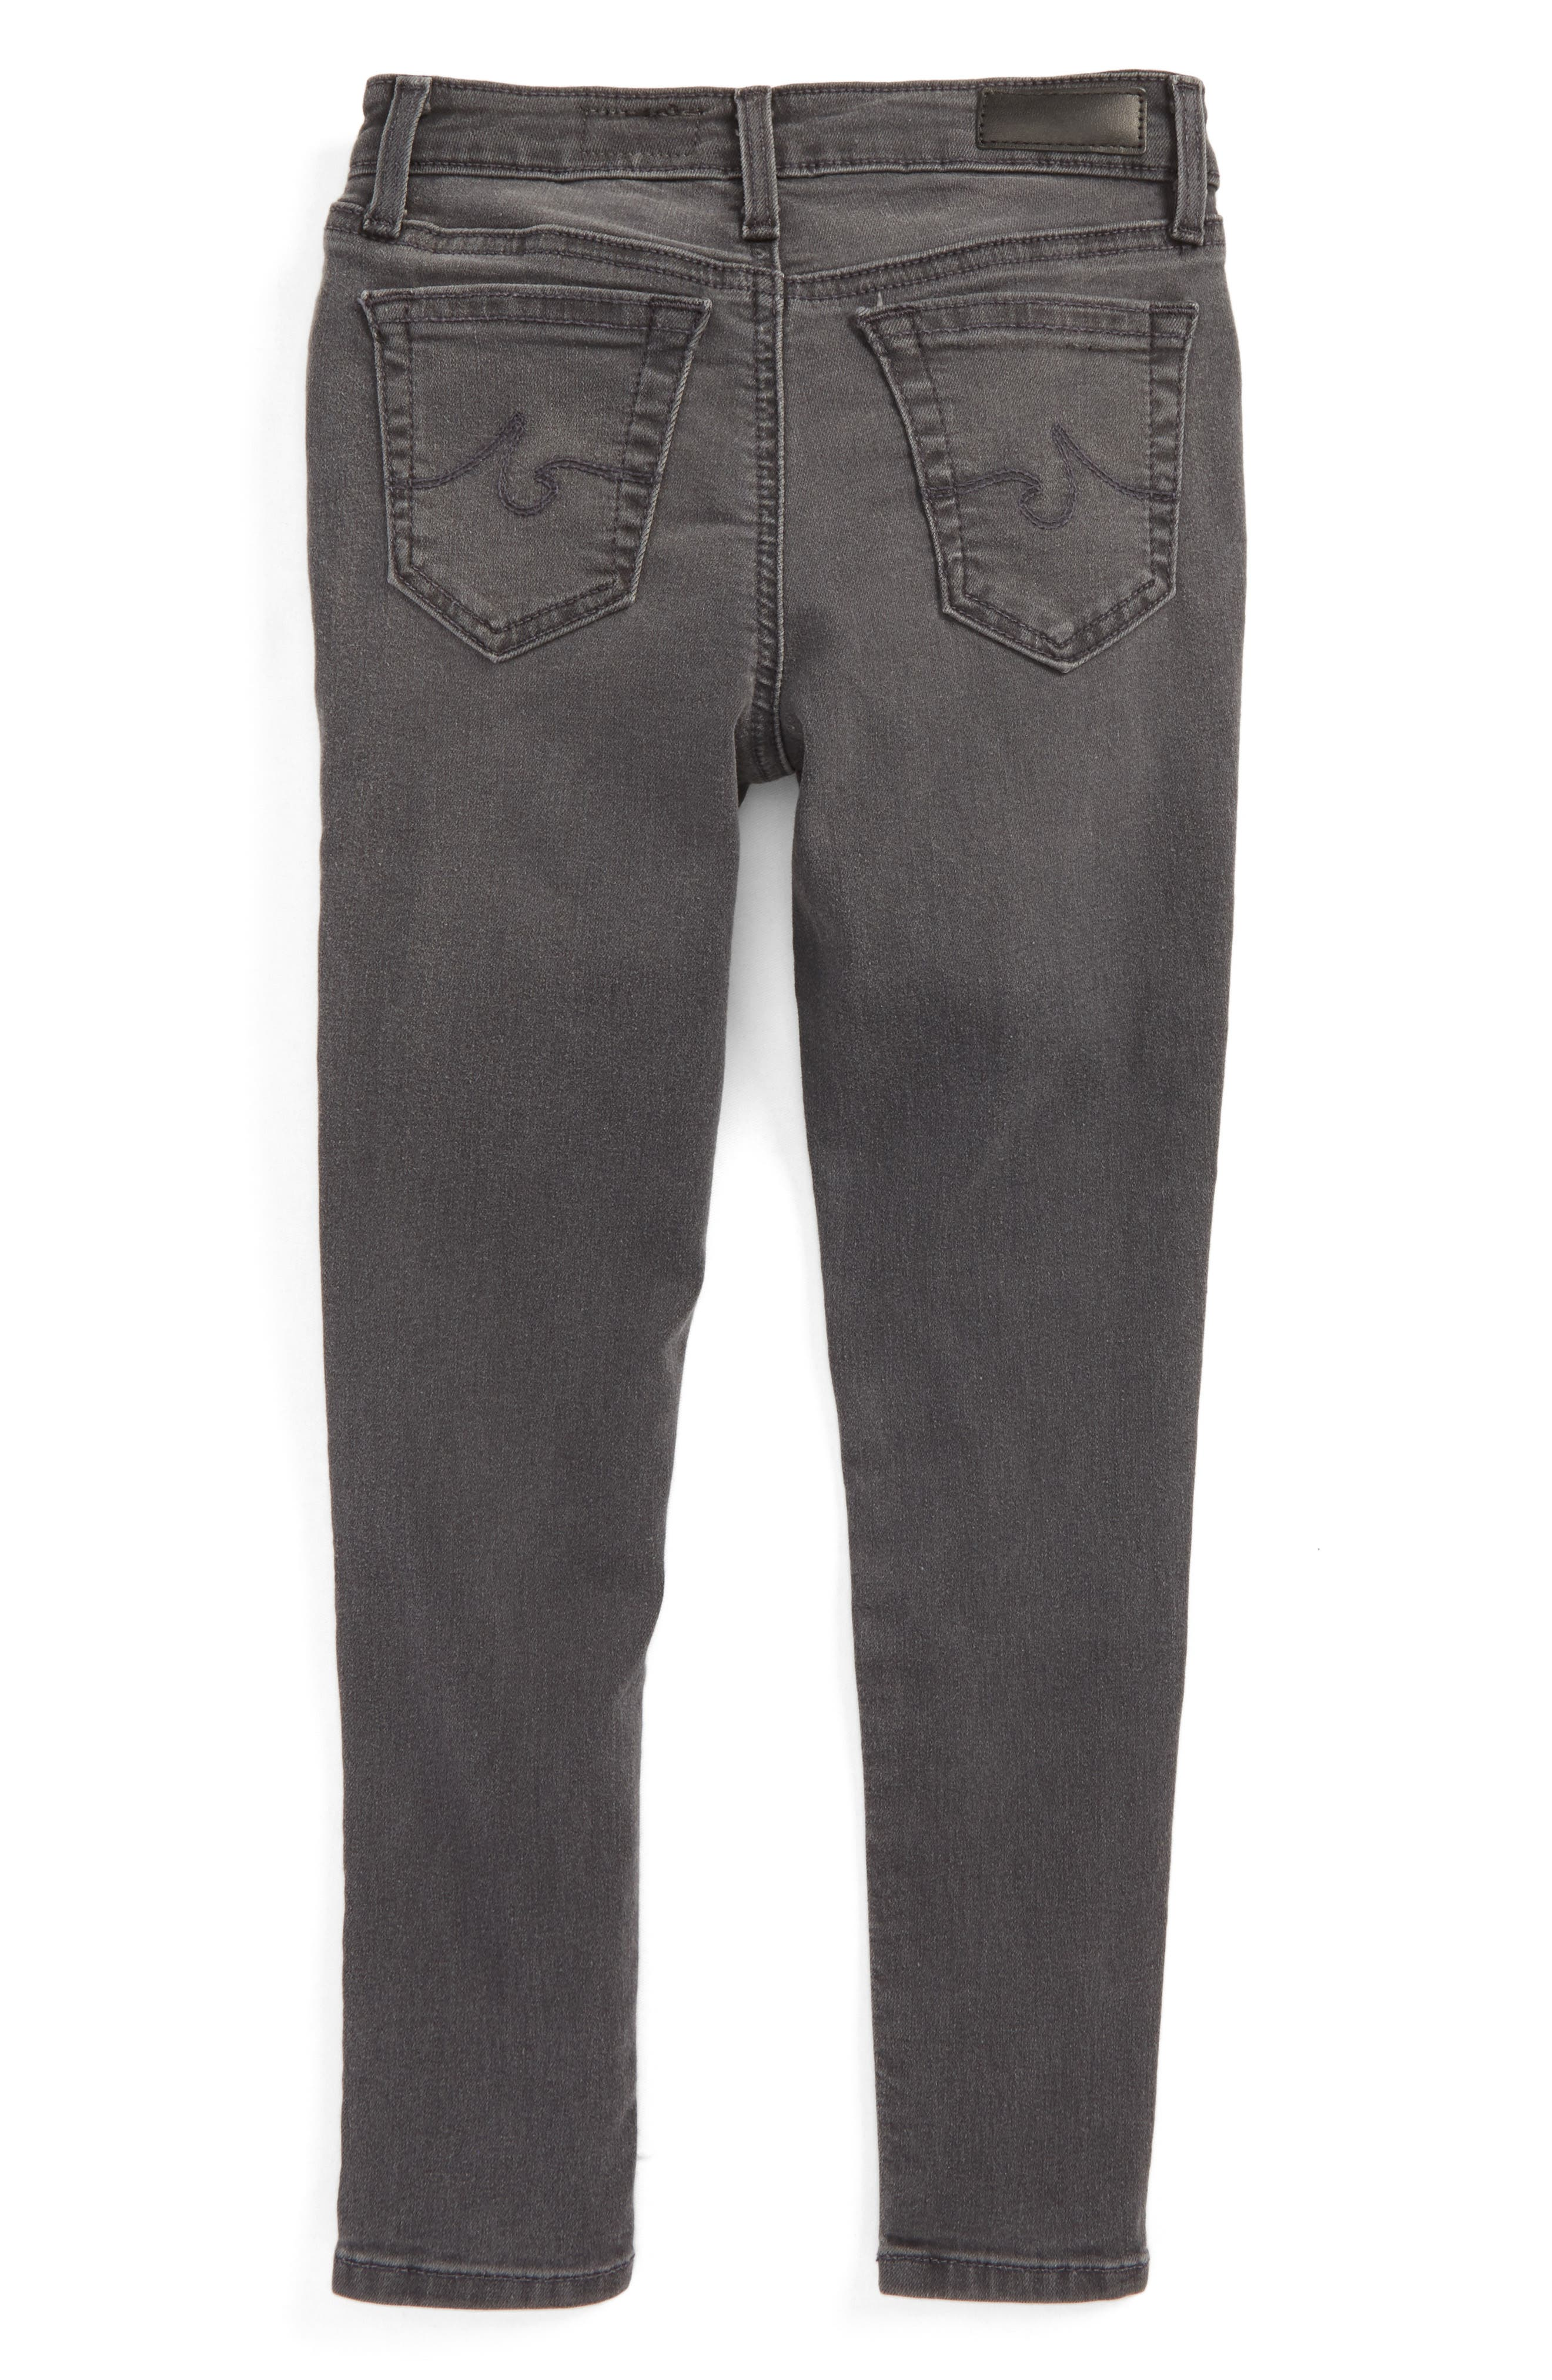 Twiggy Skinny Ankle Jeans,                             Alternate thumbnail 2, color,                             Fulton Wash